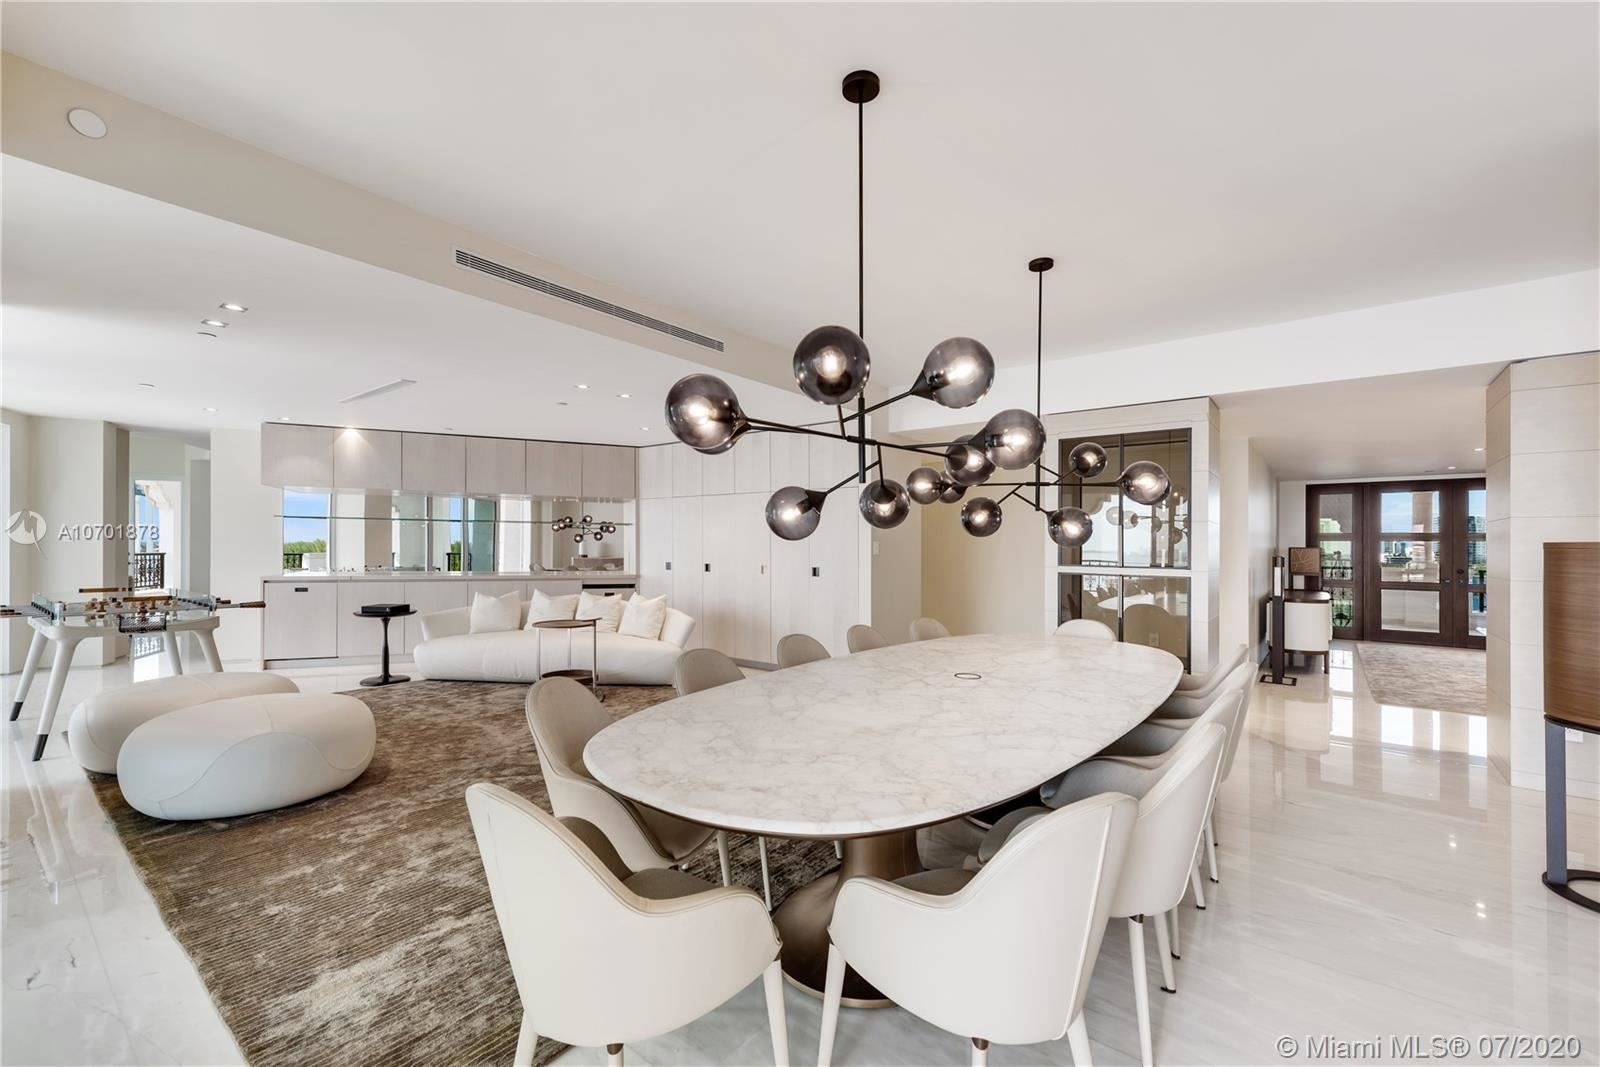 Photo 21 of Listing MLS a10701878 in 5292 Fisher Island Dr #5292 Miami FL 33109